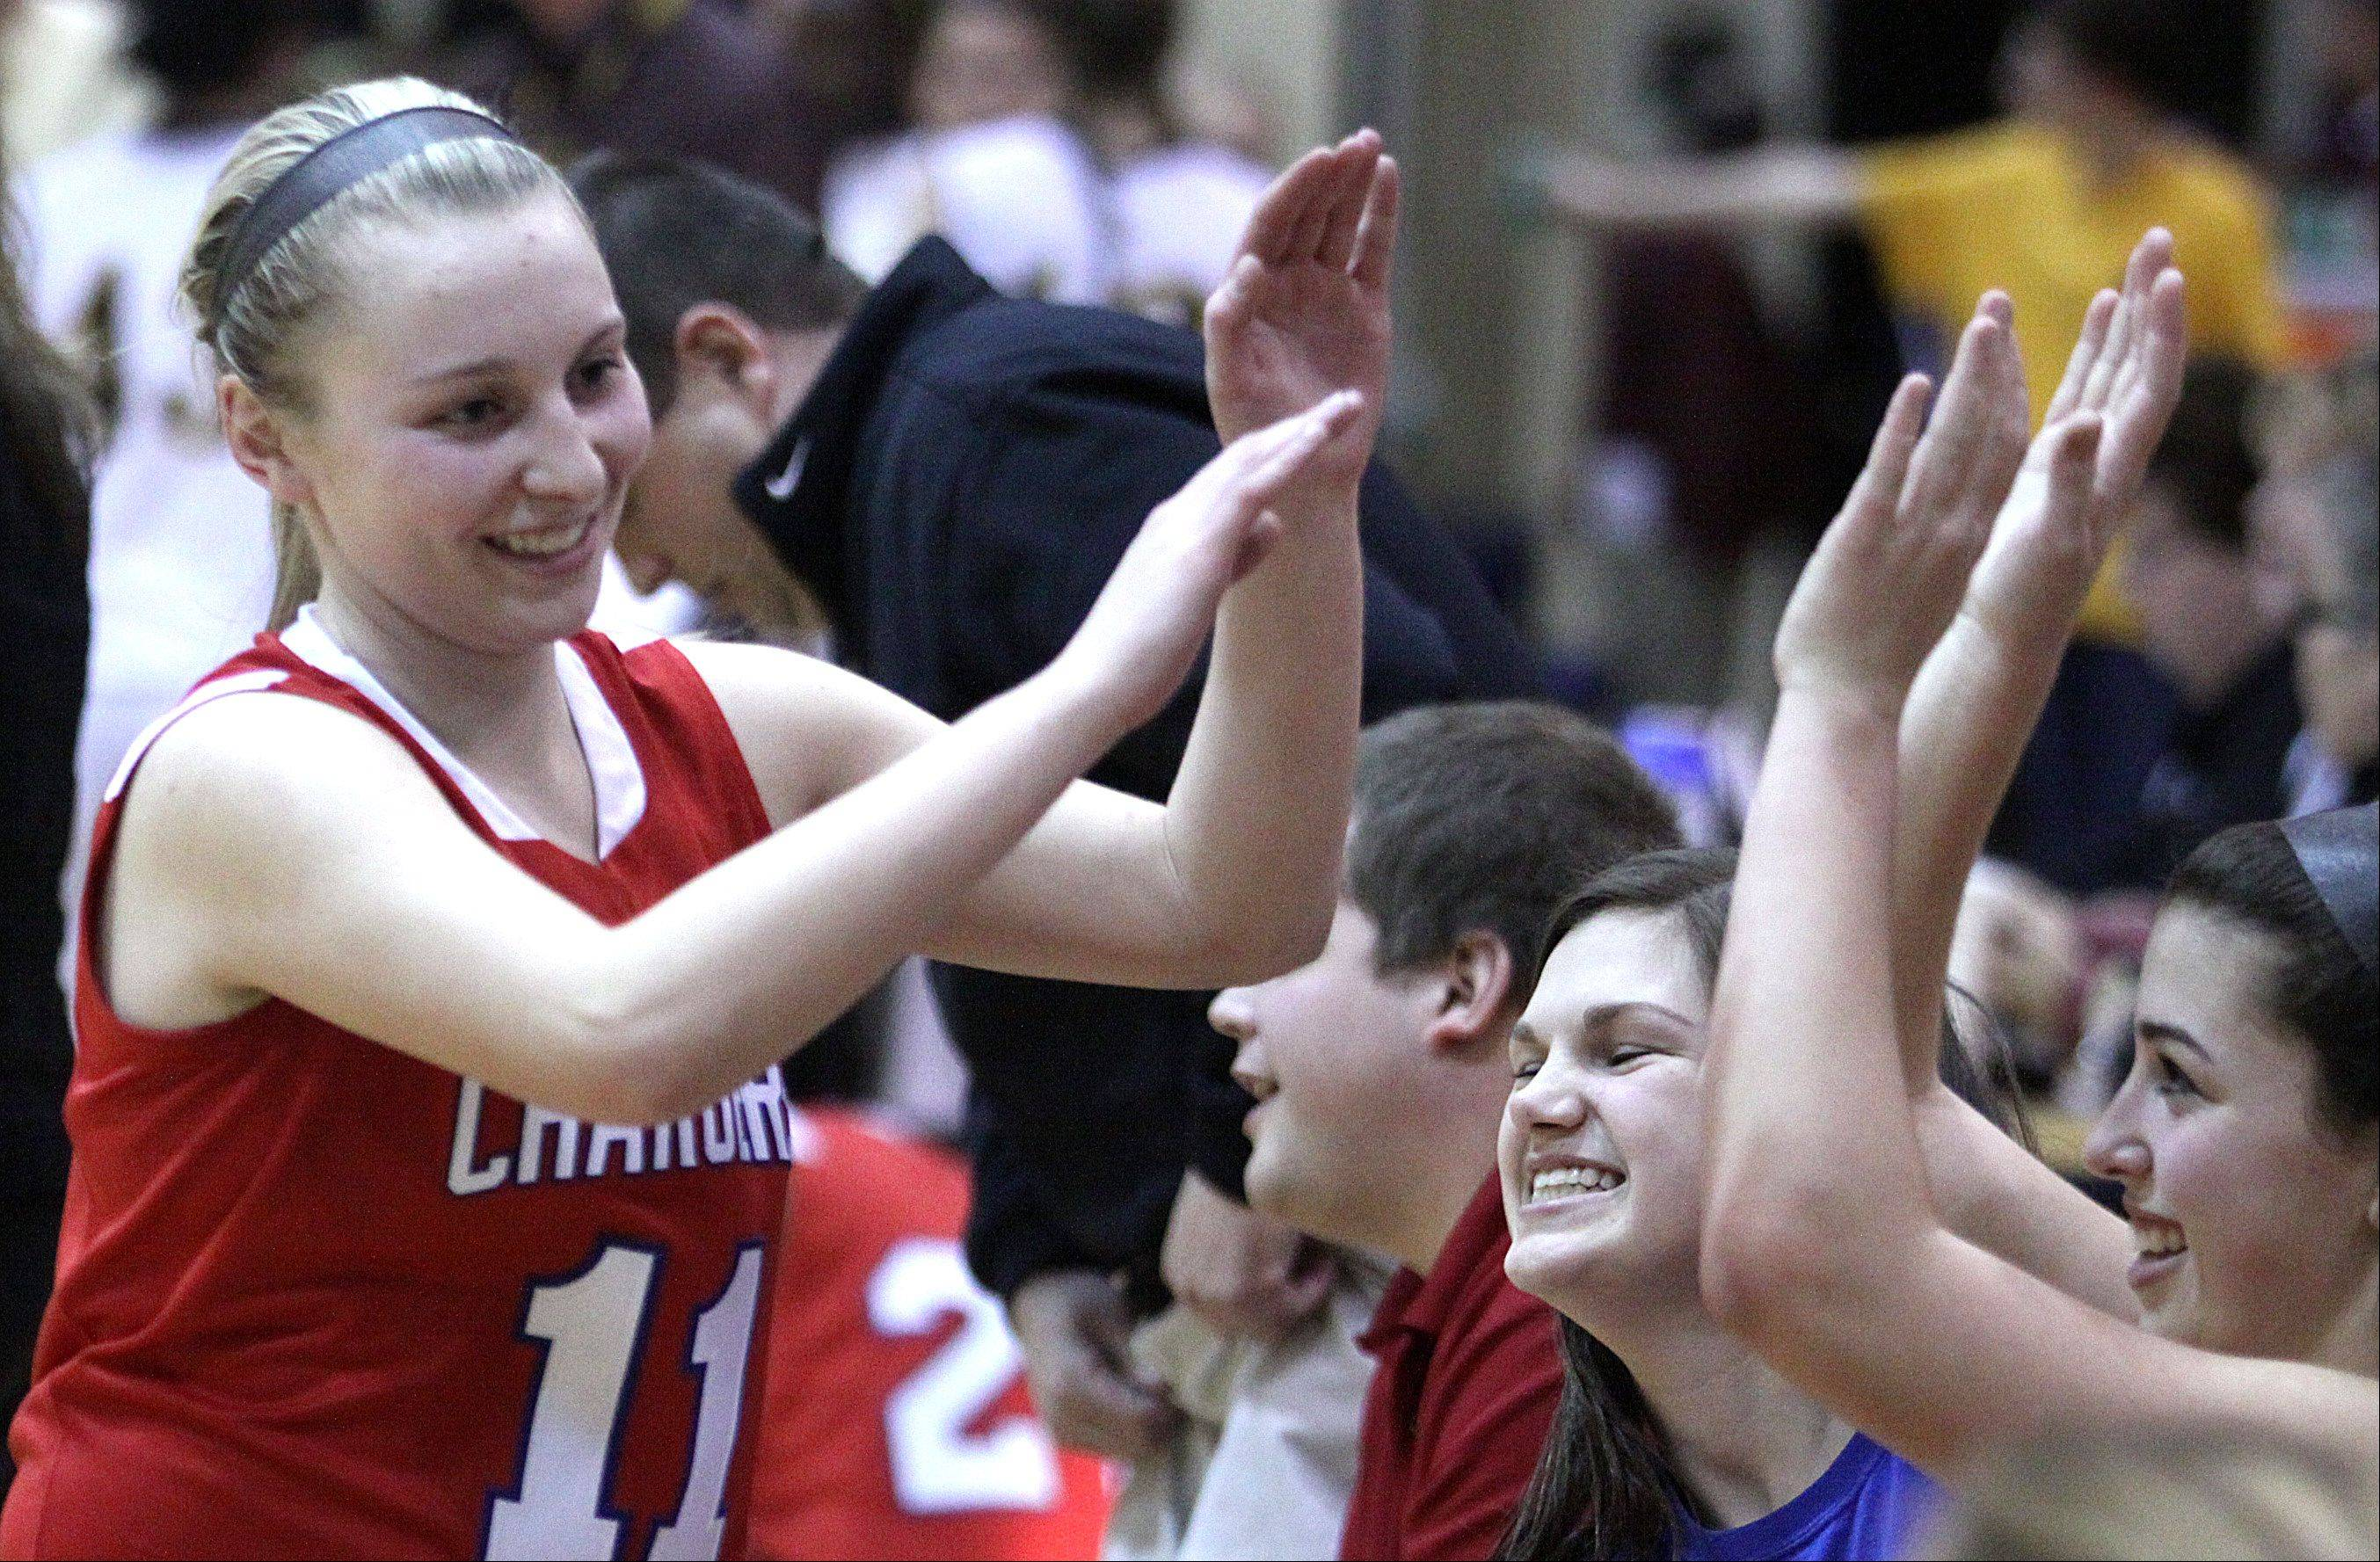 Dundee-Crown's Jordan Bartelt is all smiles as she high fives teammates at the end of a regional game against Jacobs at Streamwood High School on Monday night. Dundee-Crown won 61-45.